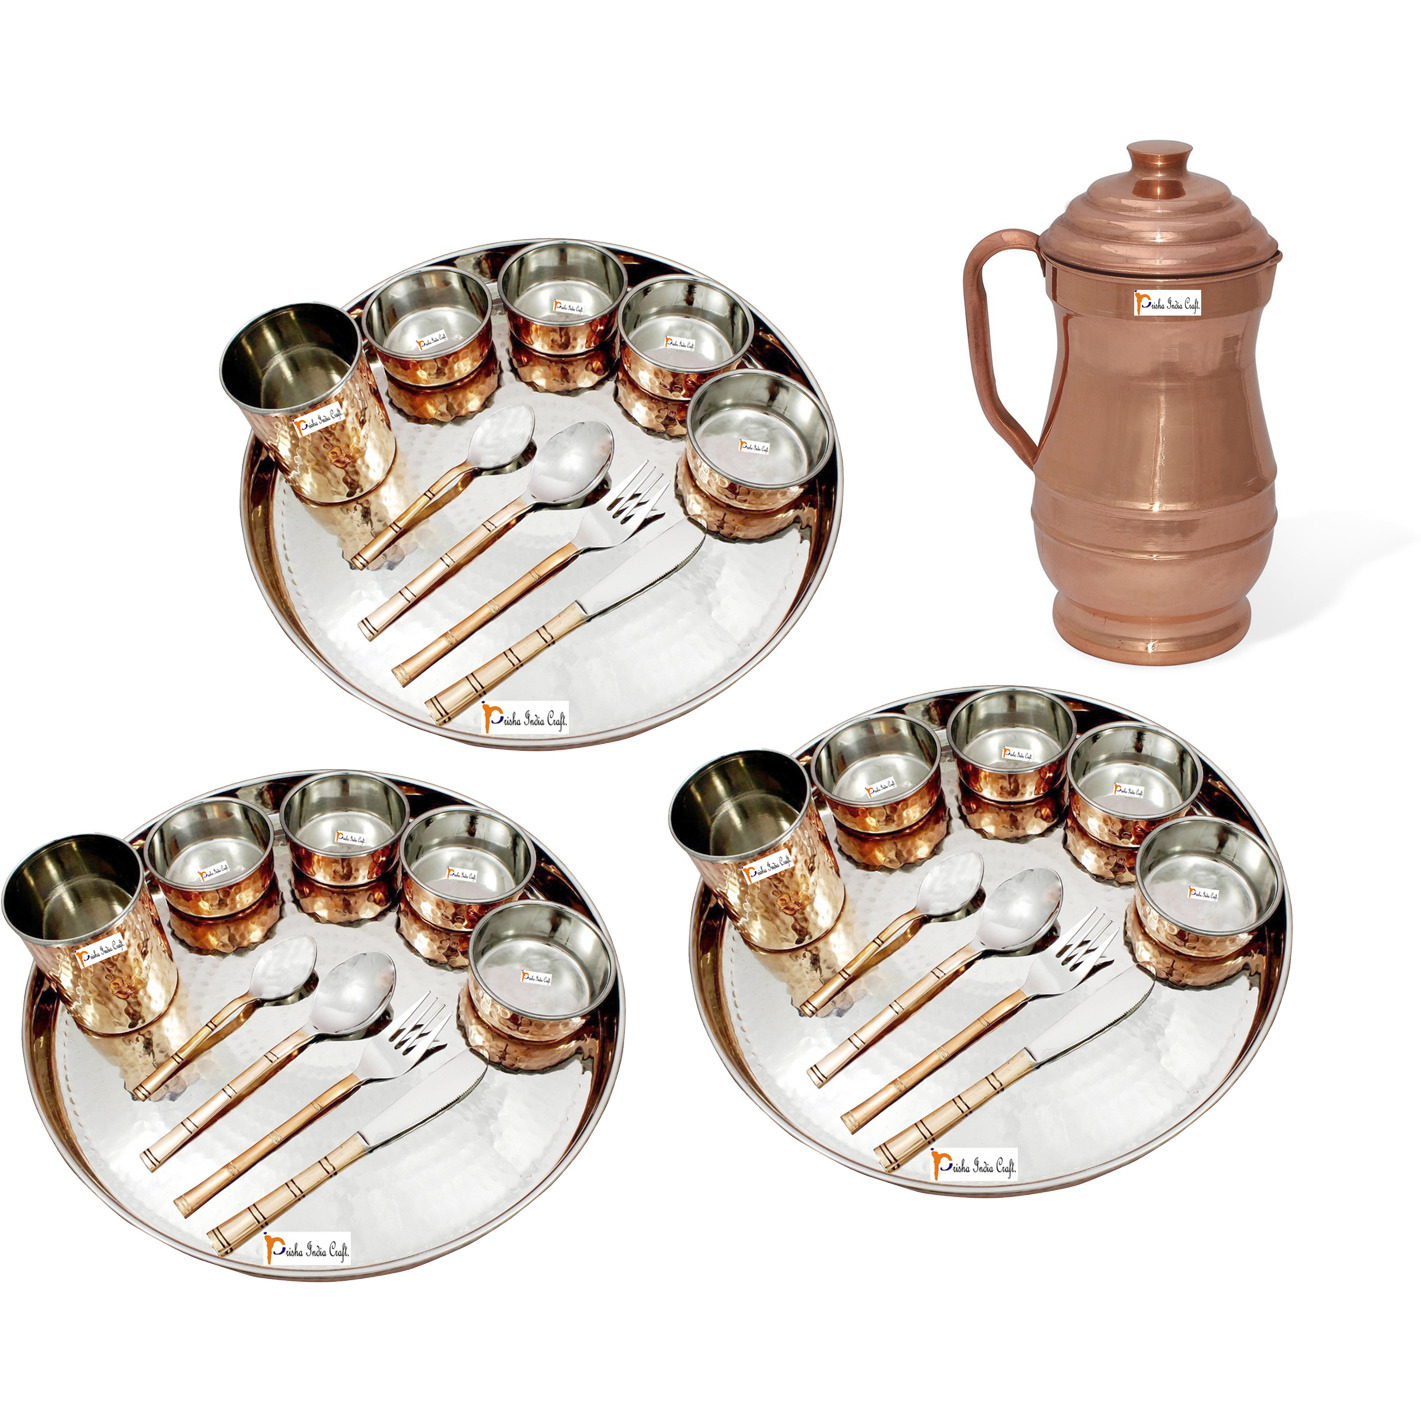 Prisha India Craft B. Set of 3 Dinnerware Traditional Stainless Steel Copper Dinner Set of Thali Plate, Bowls, Glass and Spoons, Dia 13  With 1 Pure Copper Maharaja Pitcher Jug - Christmas Gift